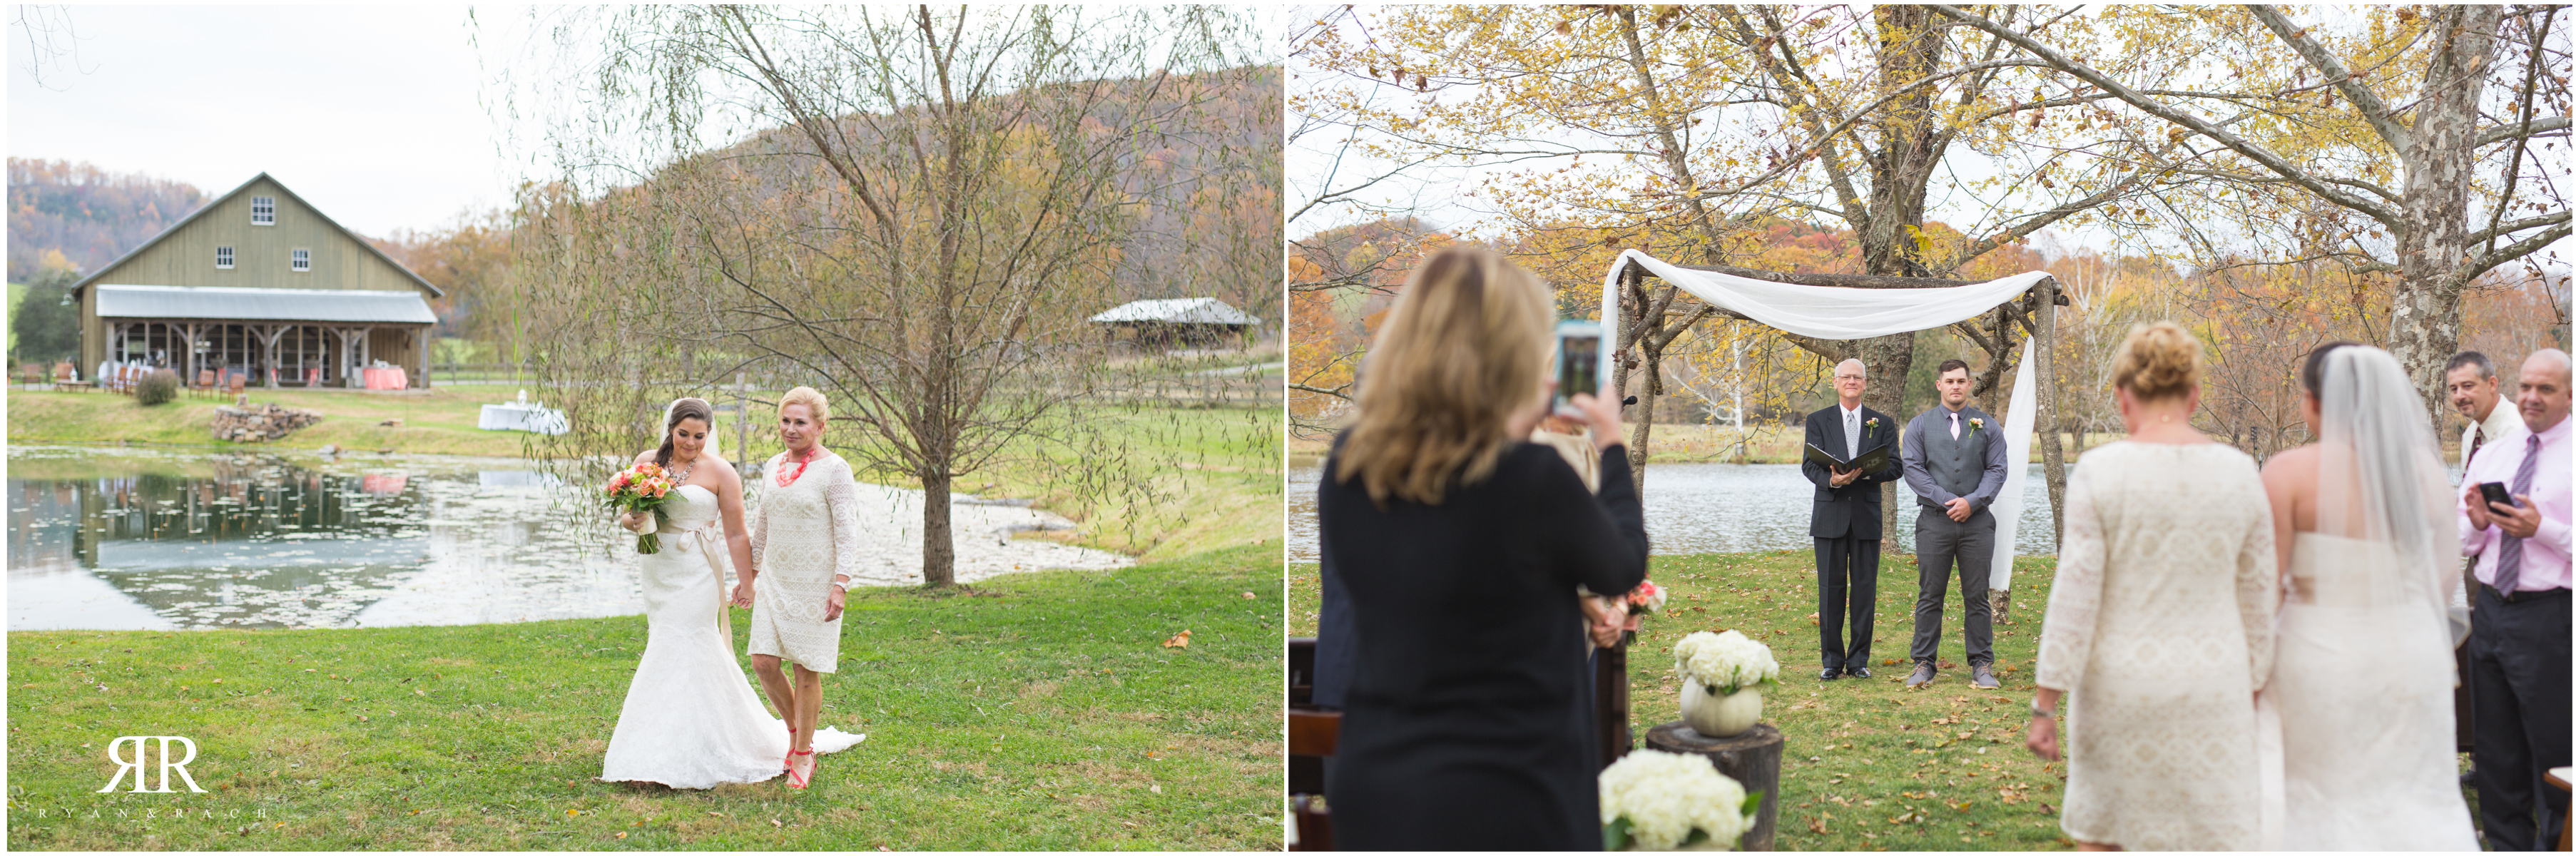 Big Spring Farm Wedding